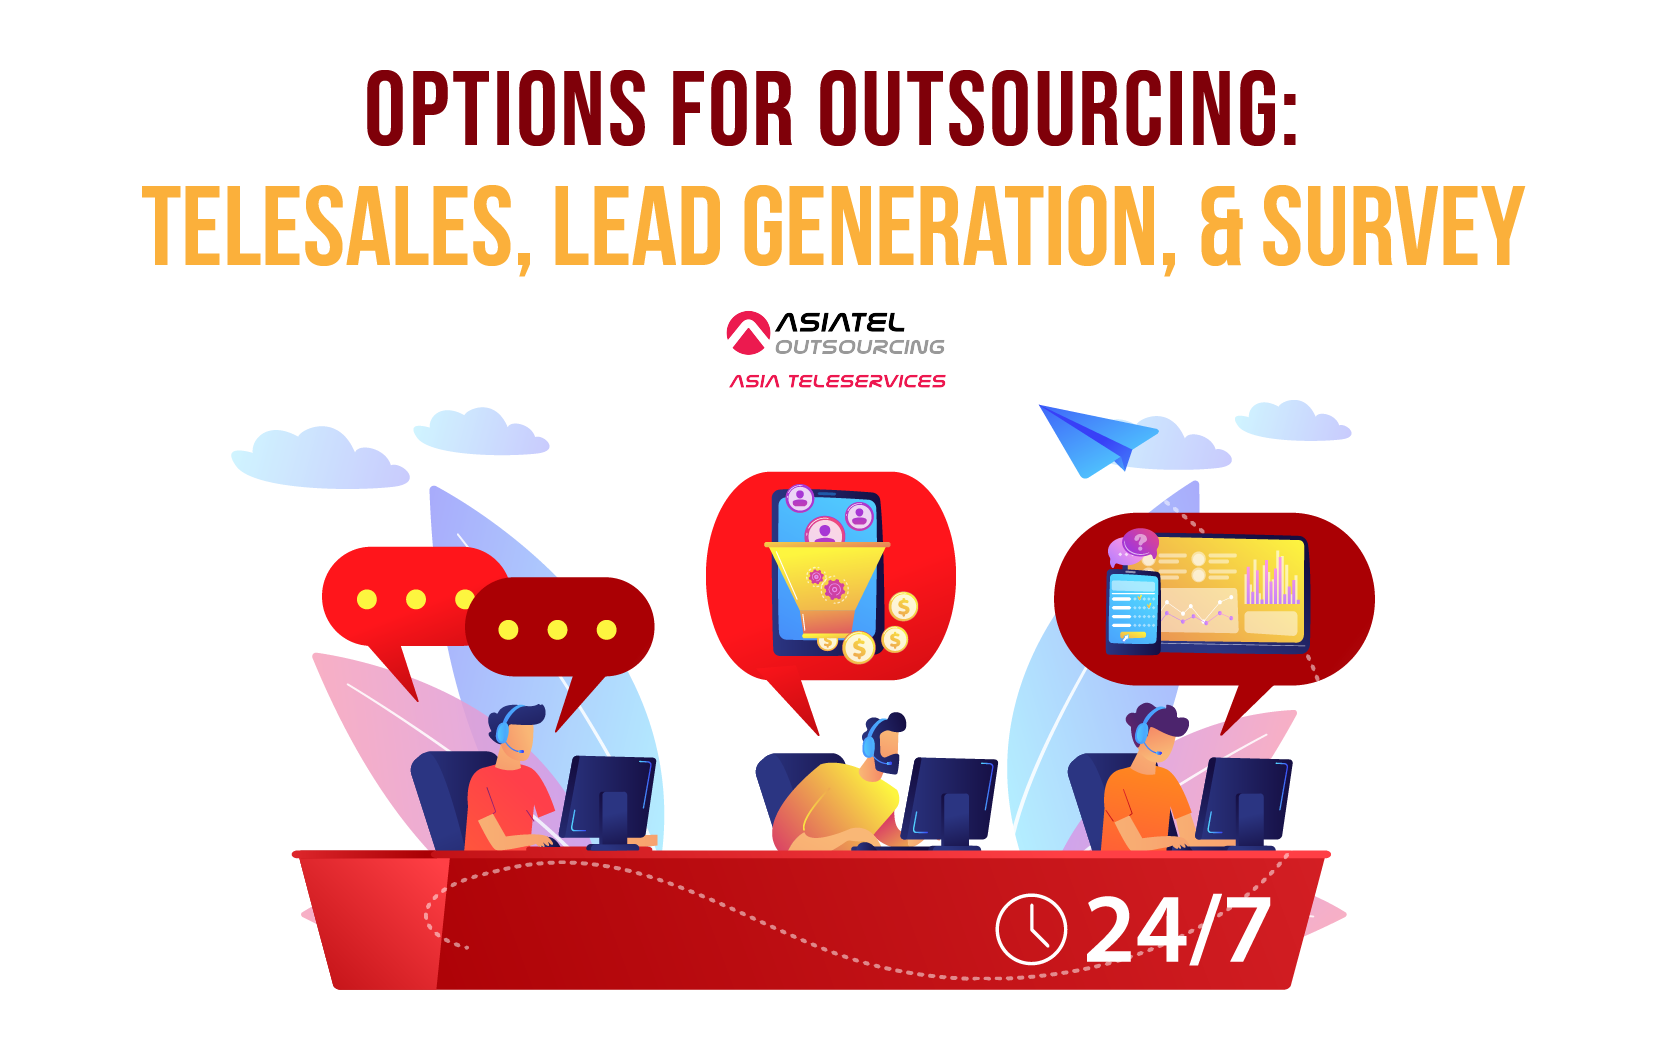 Options for Outsourcing: Telesales, Lead Generation & Survey